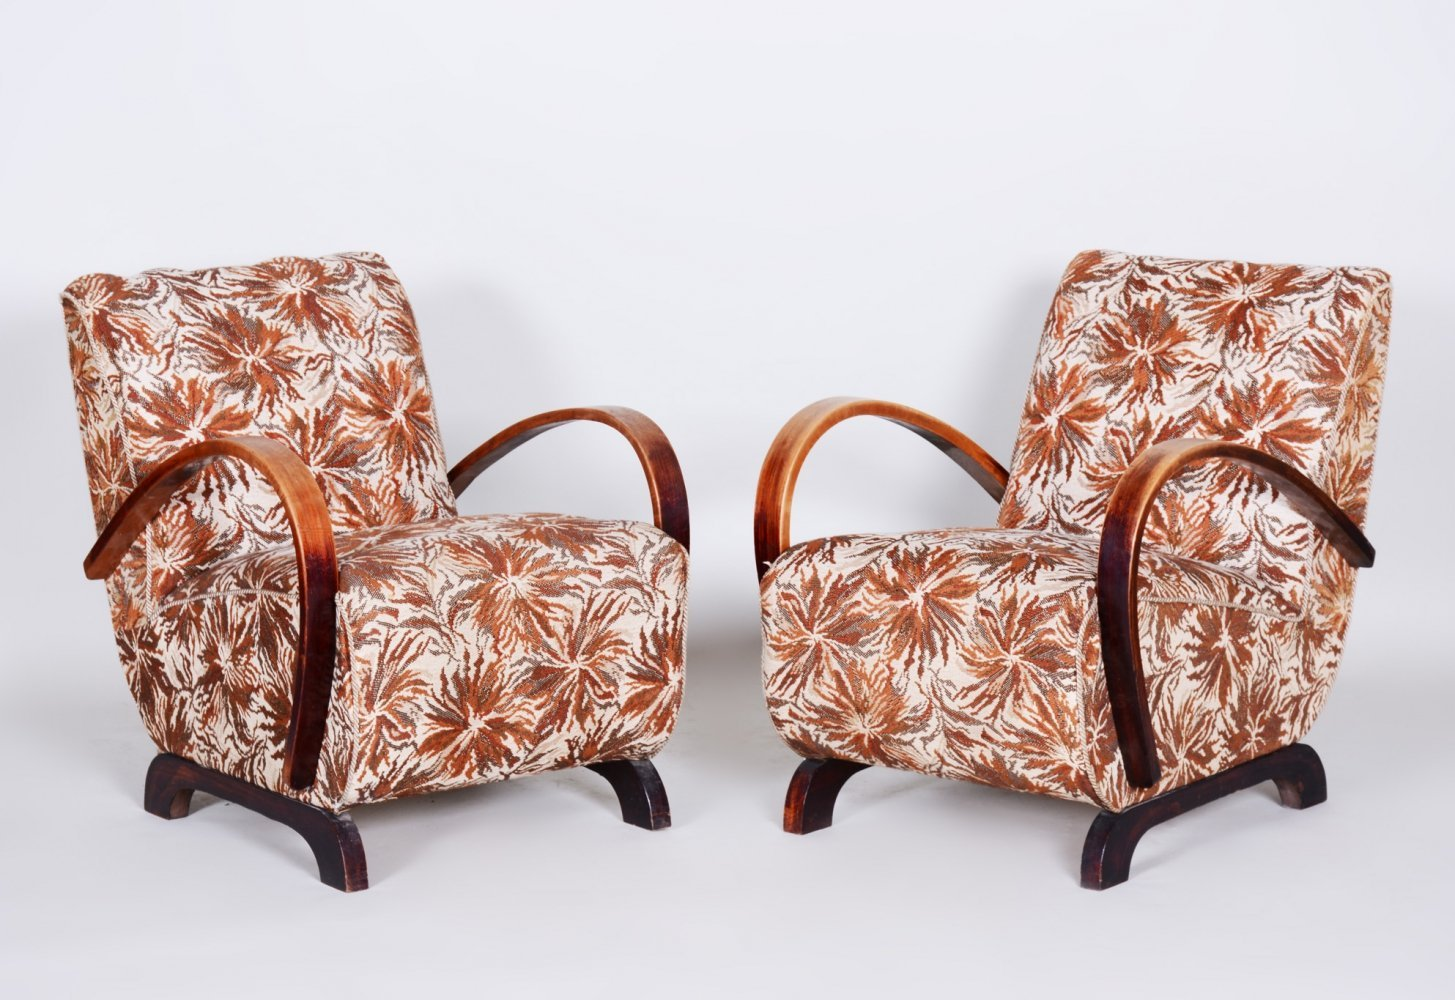 Pair of Beech Art Deco Armchairs by Jindrich Halabala, 1930s